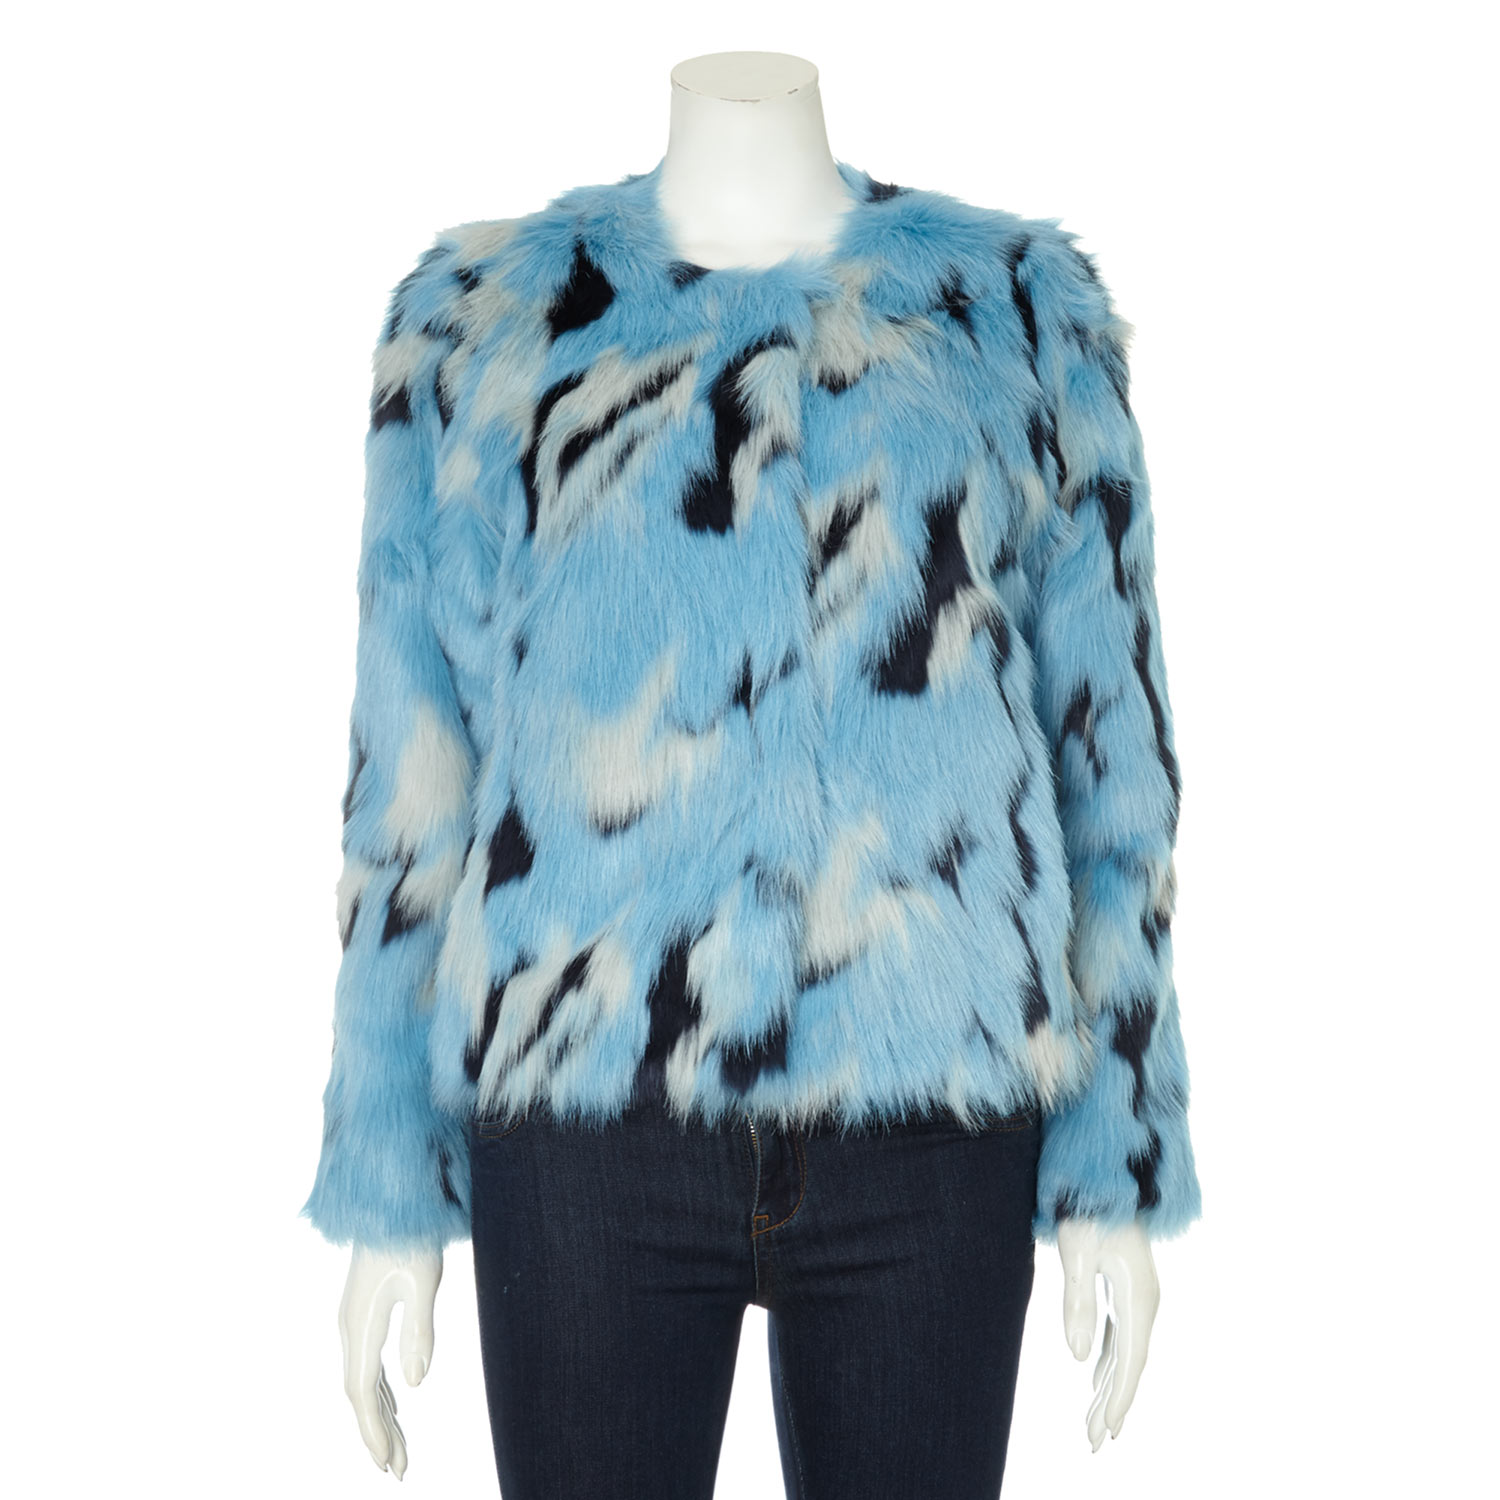 Cape daisy blue faux fur jacket